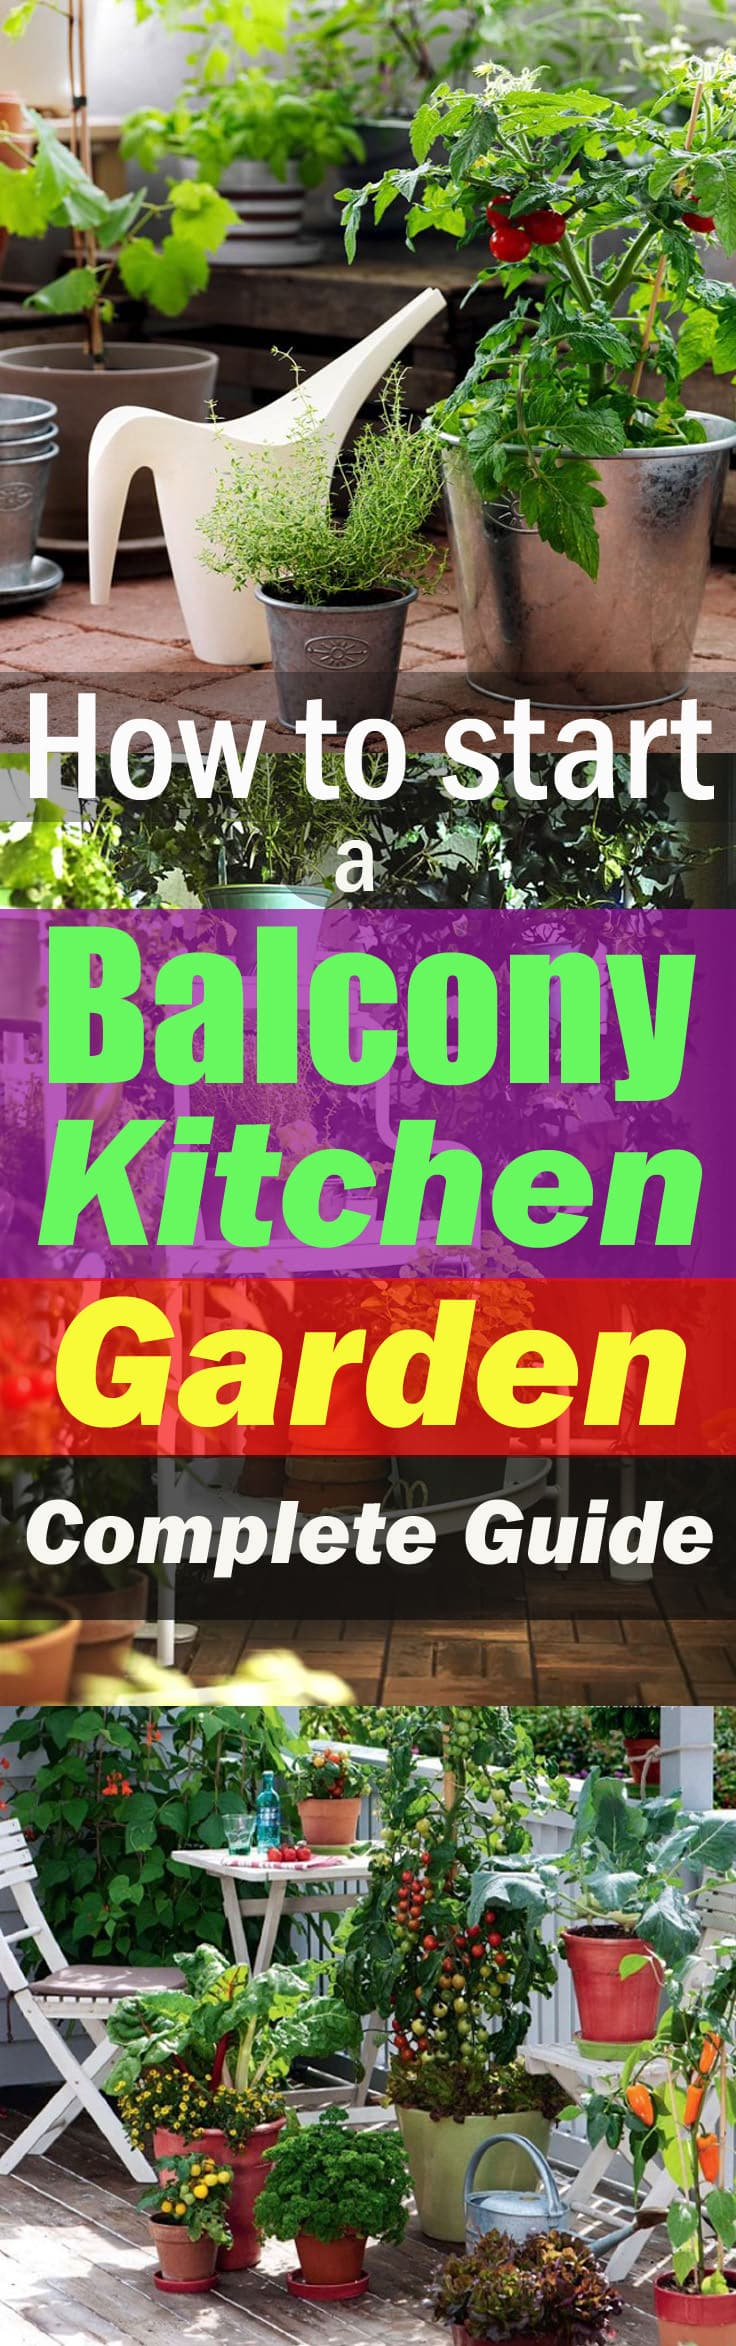 Kitchen Garden Foods How To Start A Balcony Kitchen Garden Complete Guide Balcony